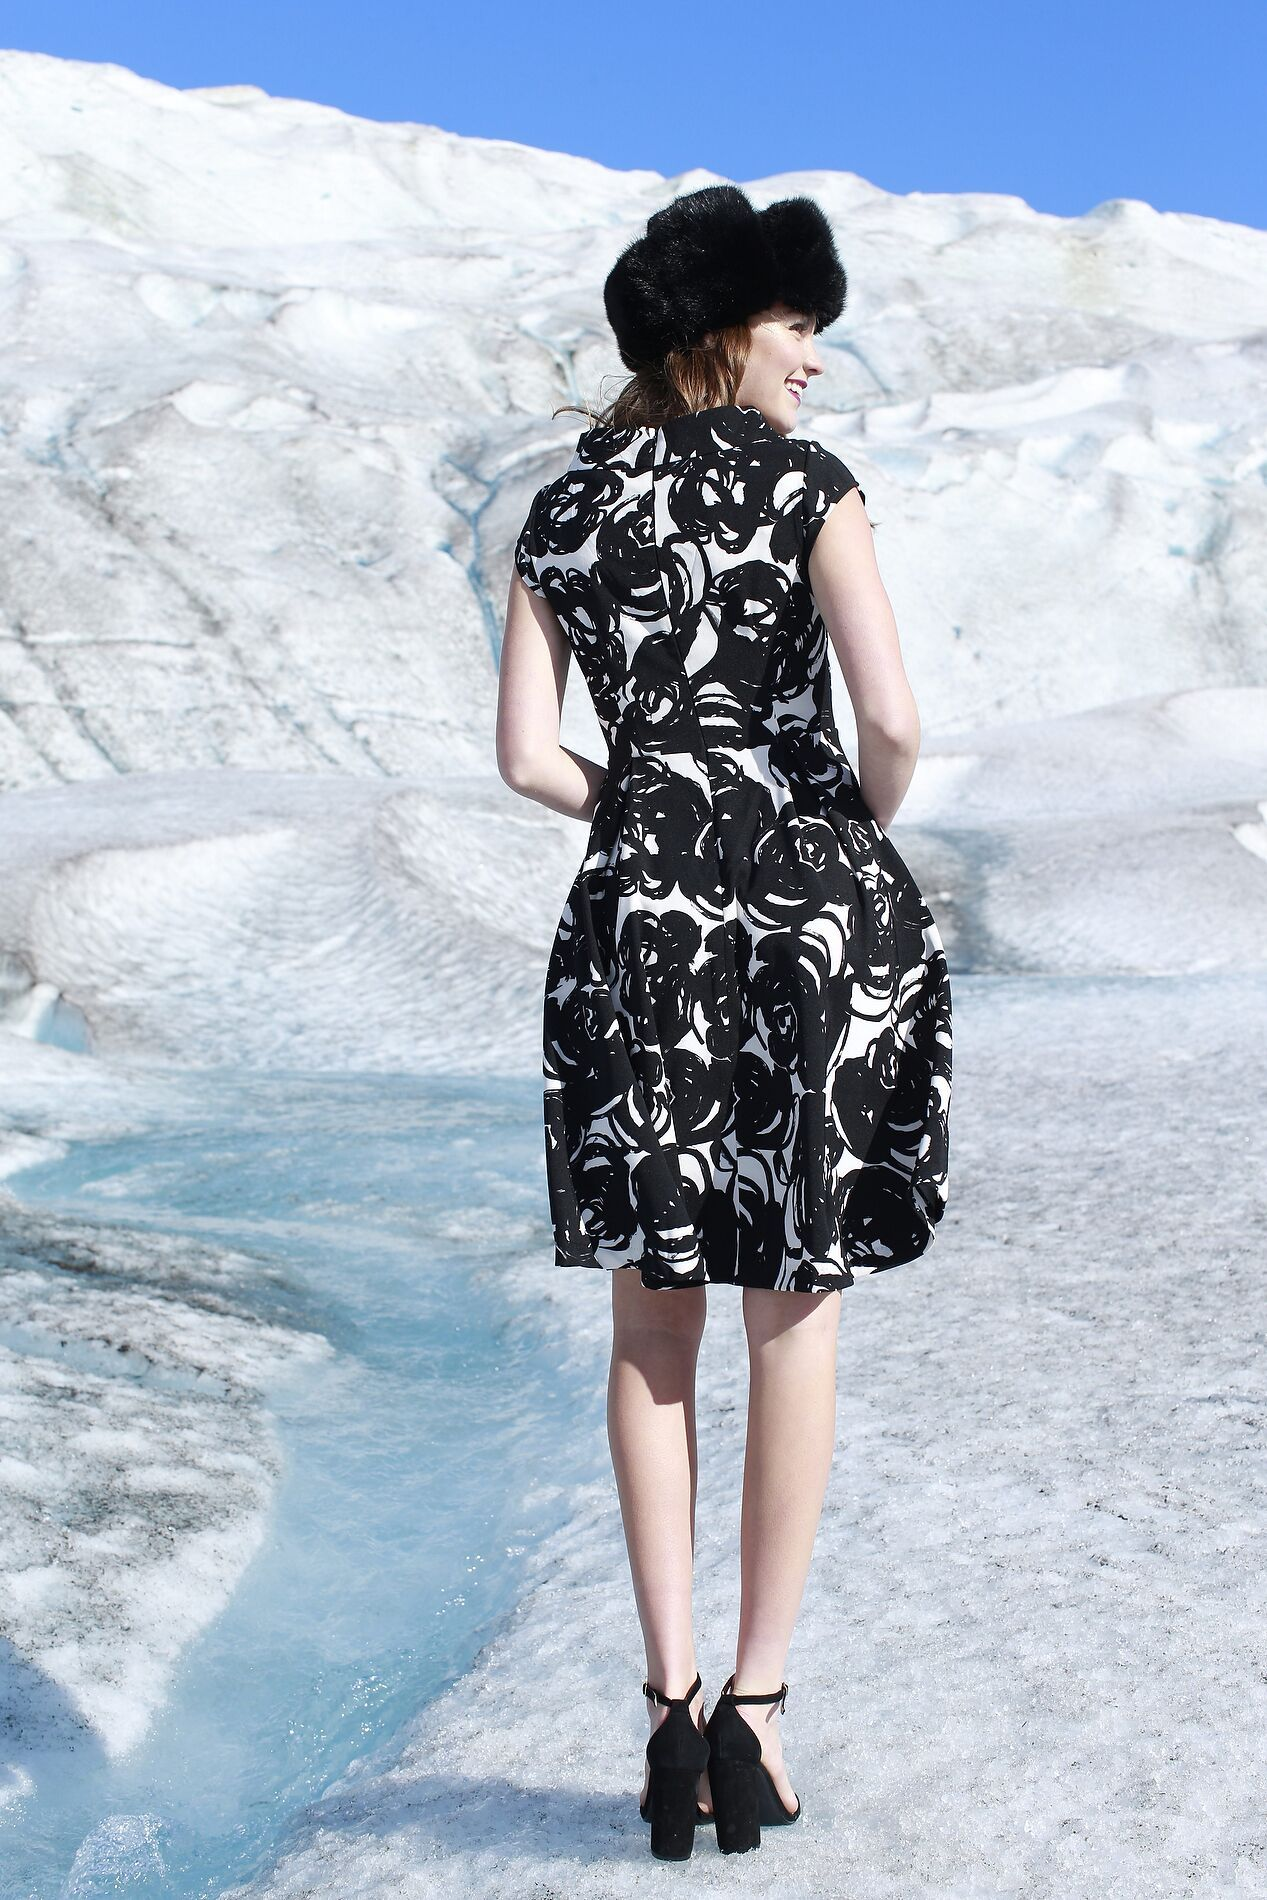 Cora dress black and white floral limited edition silver and ice